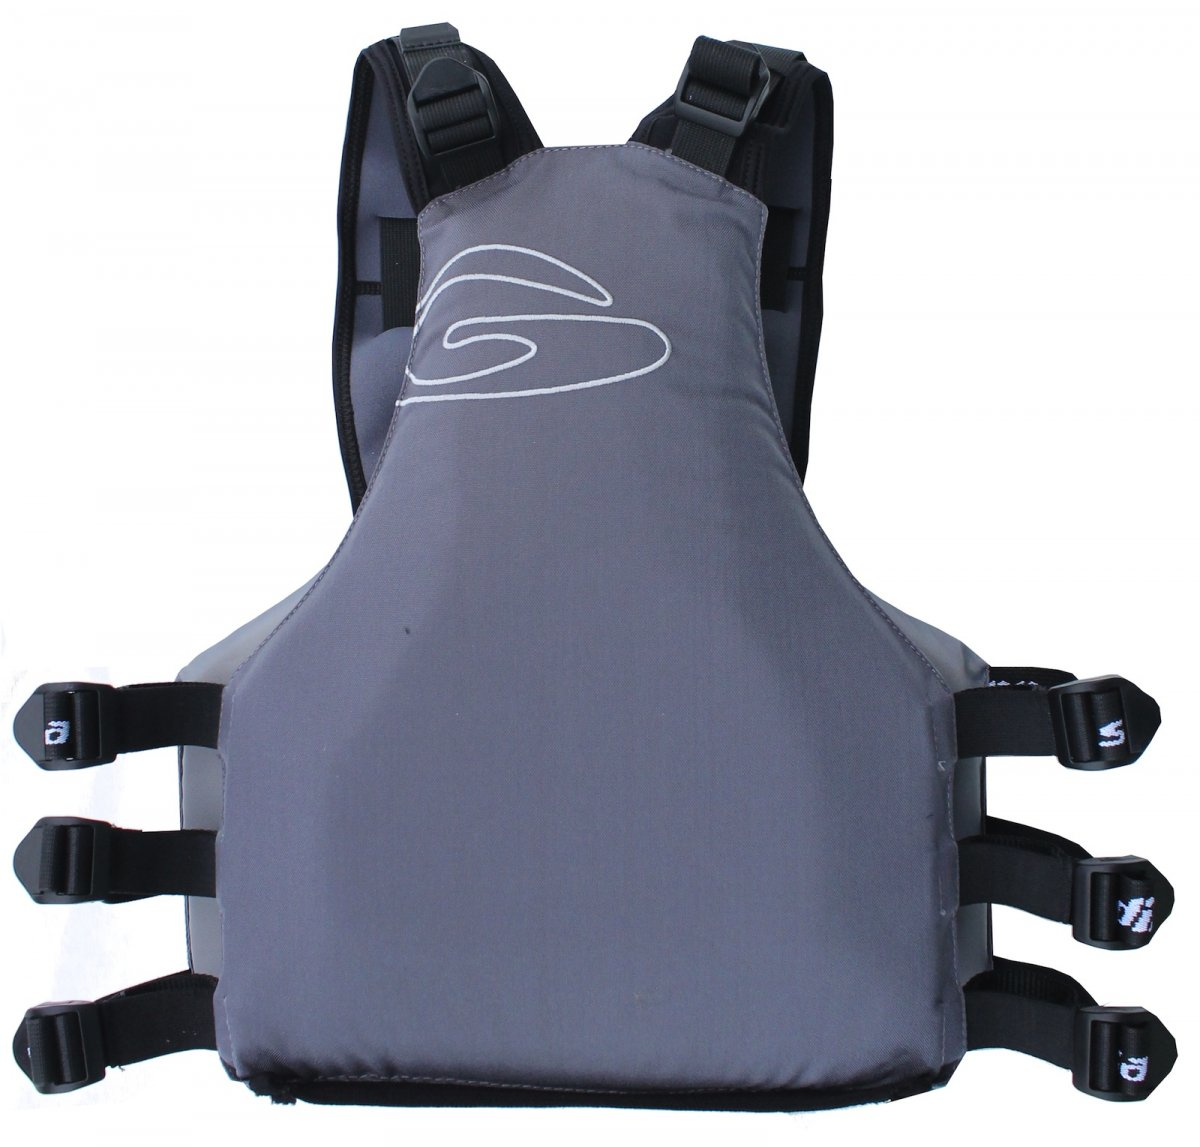 PFD Sandi pro galasport, PFD for kids and juniors, slalom pfd